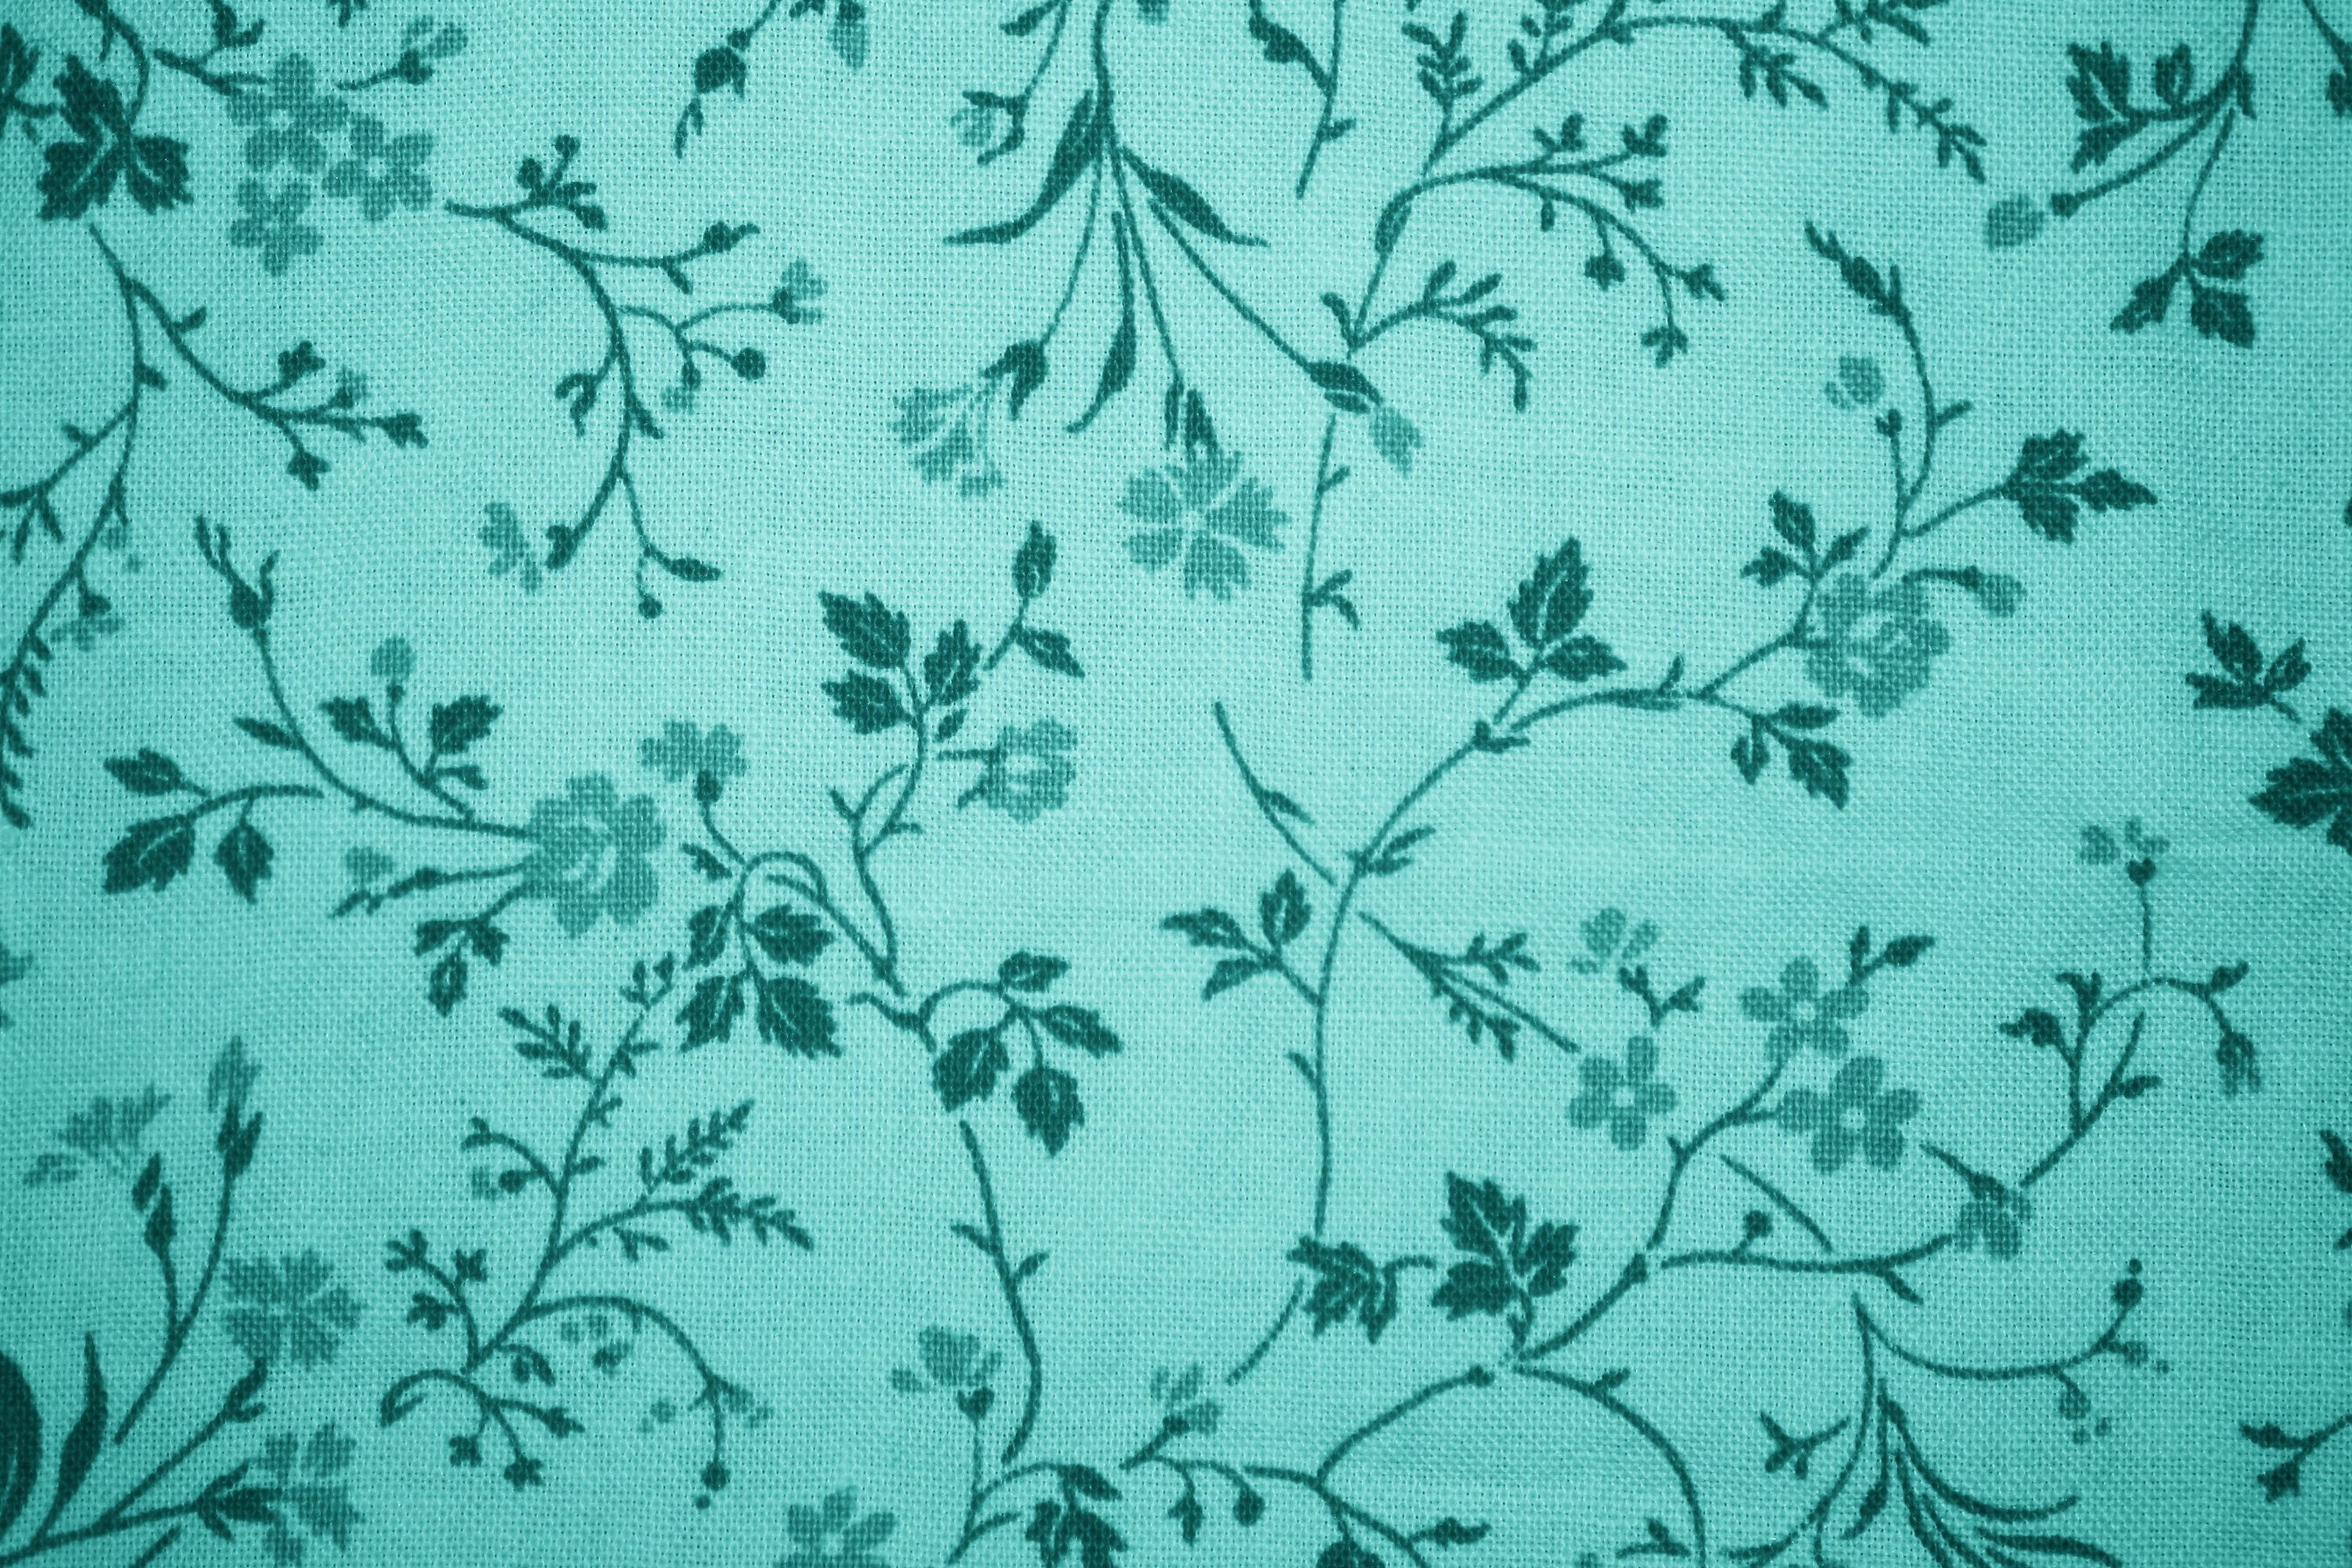 Cute Wallpapers Green Mint Mint Green Background 183 ① Download Free Stunning Hd